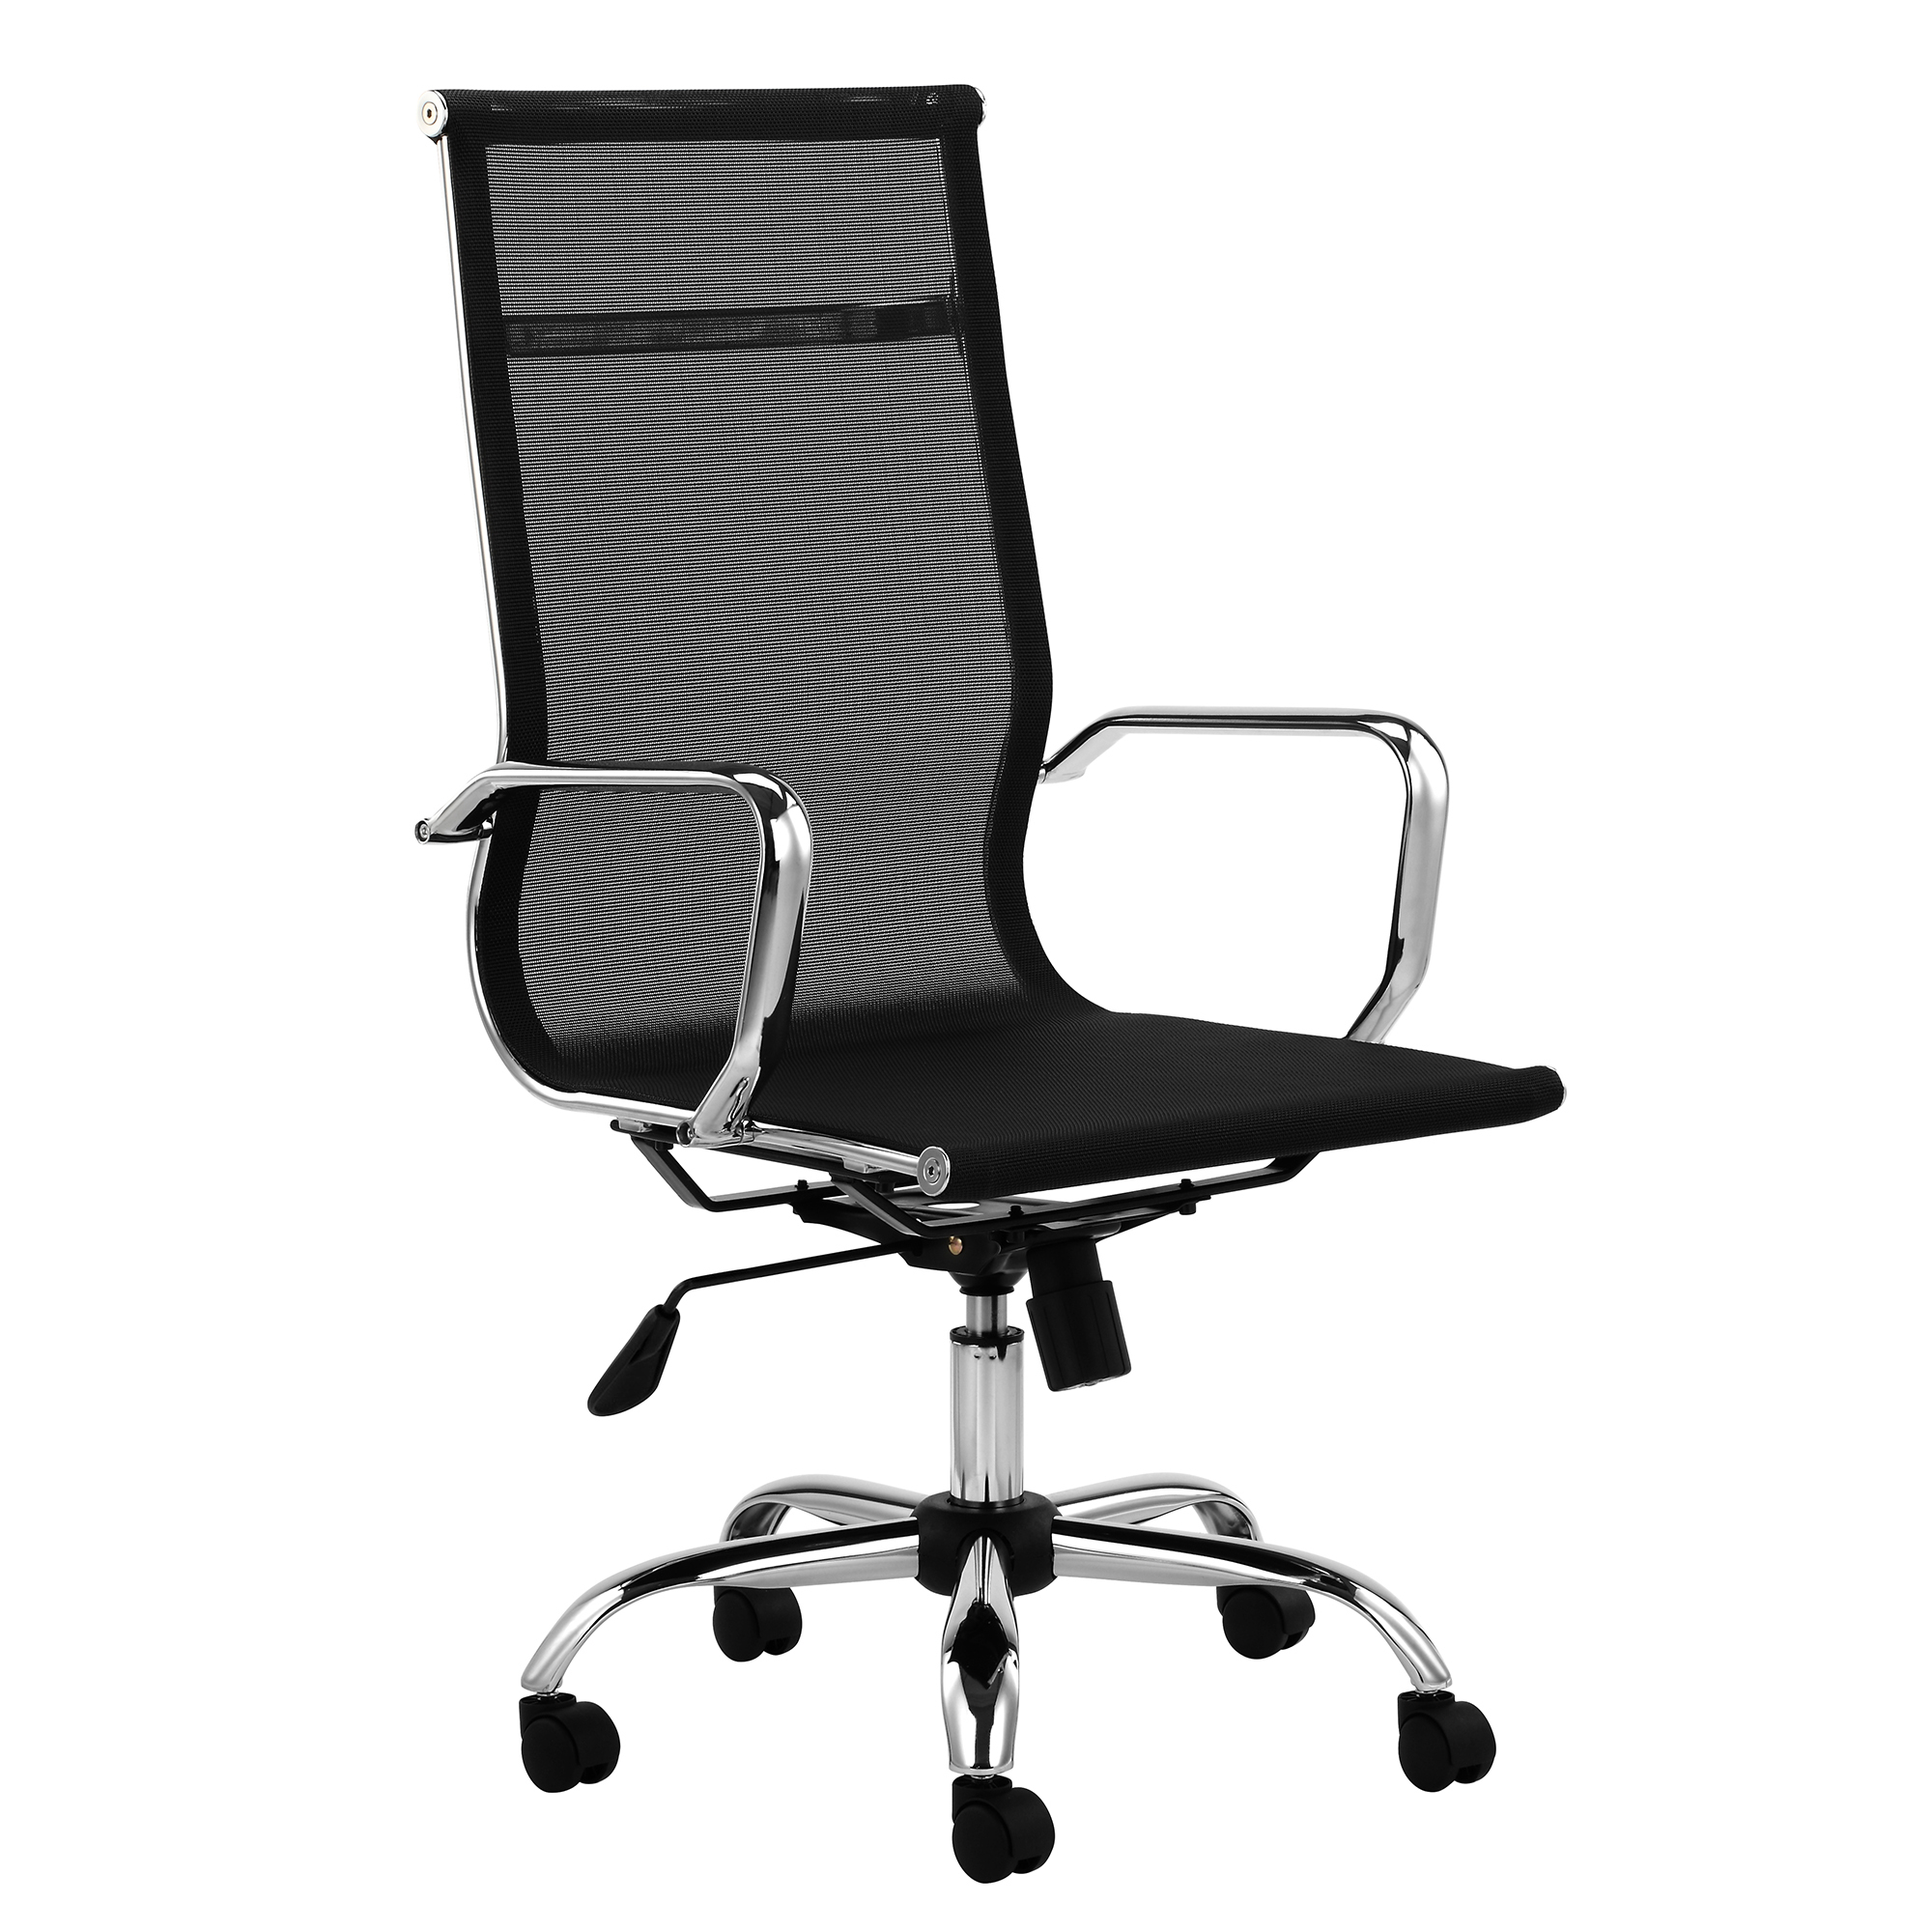 Eanes Chair Eames Replica Mesh High Back Executive Office Chair